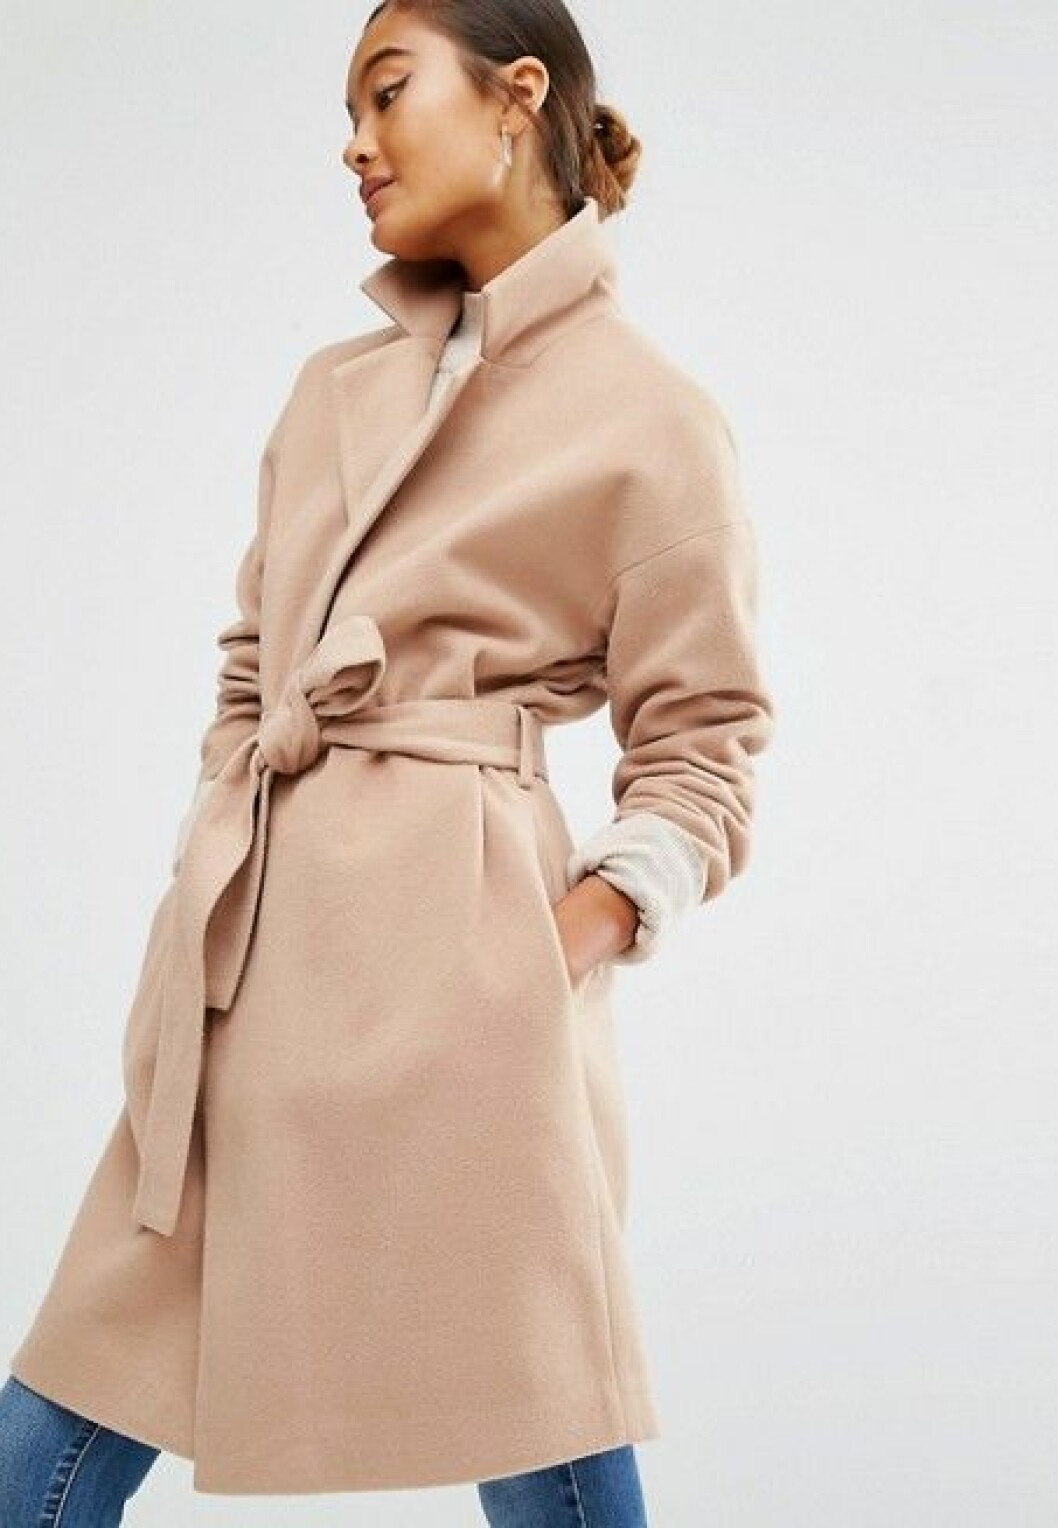 Kappa-First-I-Belted-Coat-437